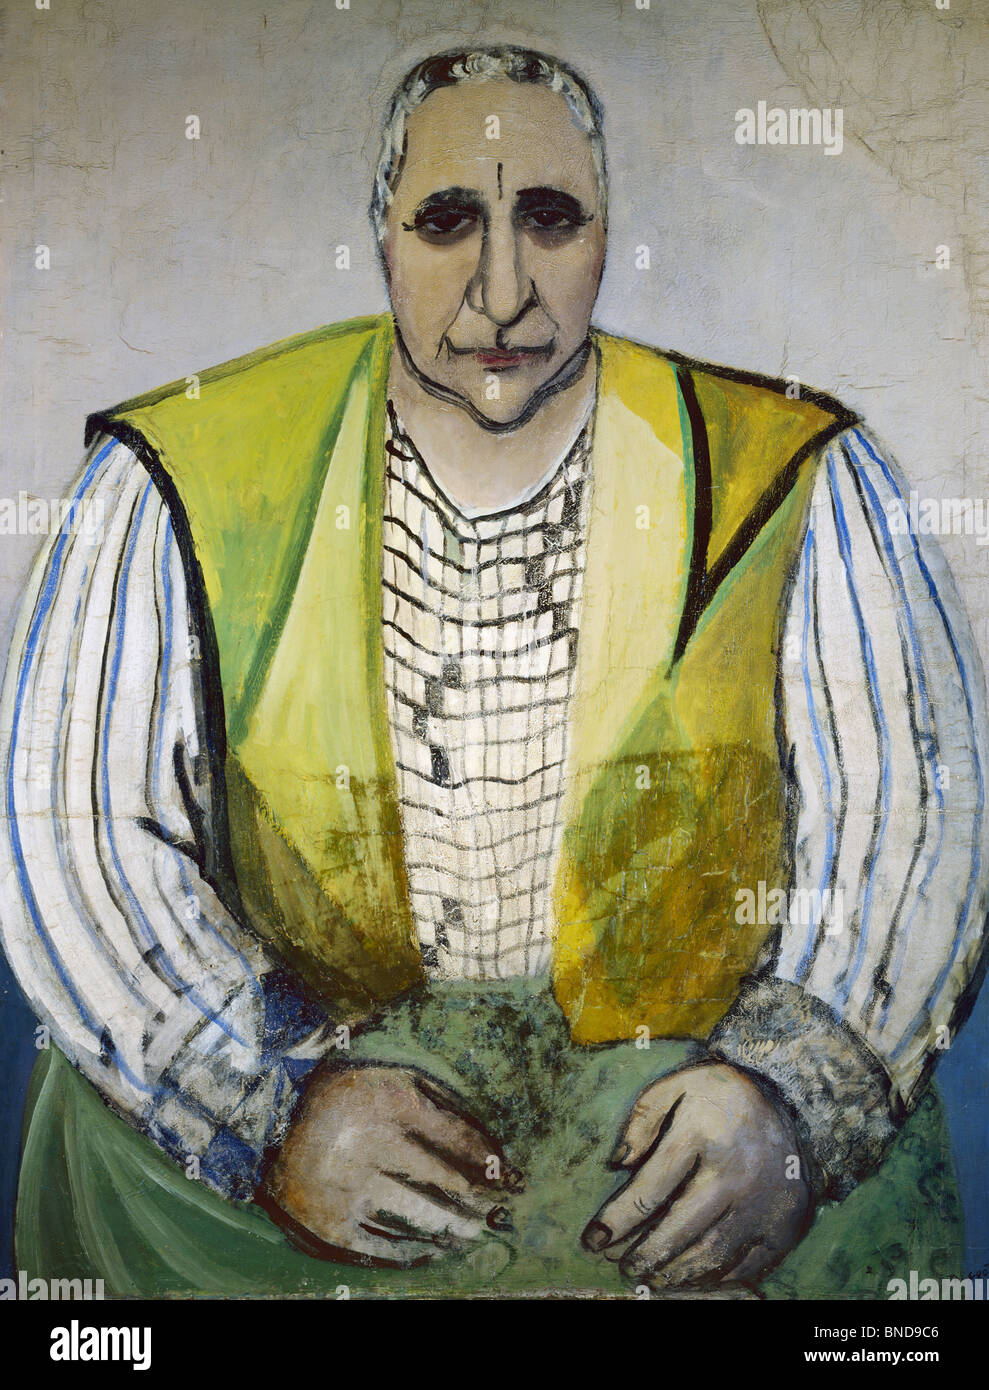 Portrait of Gertrude Stein by Pierre Tal-Coat, 1935, (1905-1985) - Stock Image